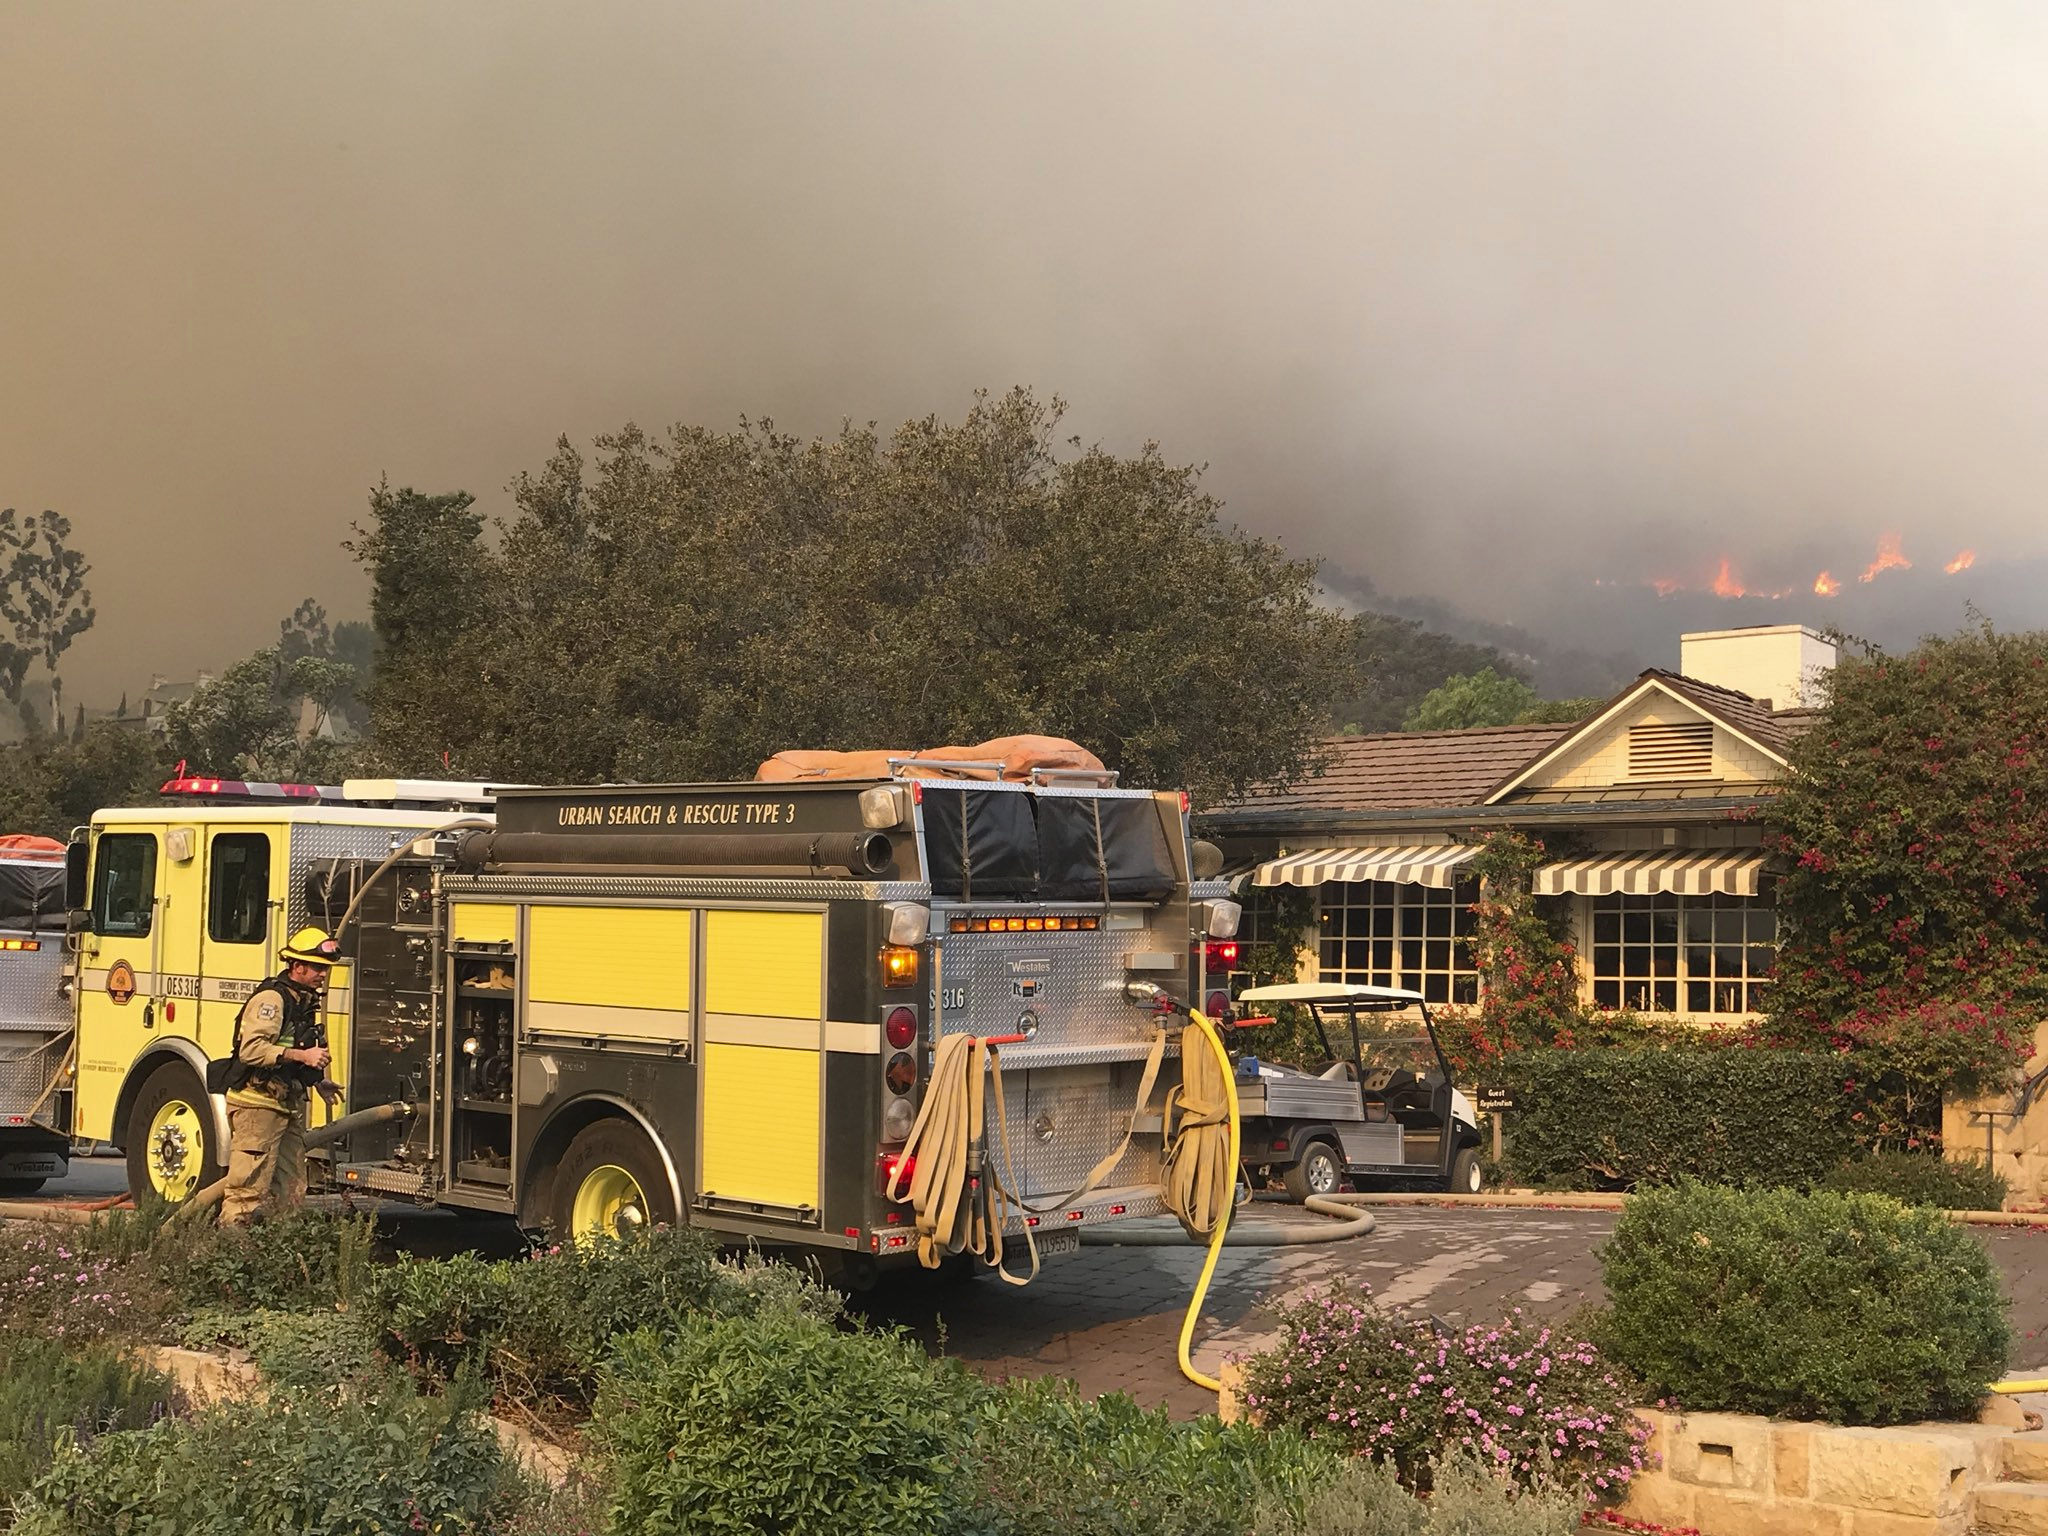 In this photo provided by the Santa Barbara County Fire Department, fire engines provide structure protection at the historic San Ysidro Ranch in Montecito, Calif., Saturday, Dec. 16, 2017. Santa Barbara County has issued new evacuation orders as a huge wildfire bears down on Montecito and other communities. The Office of Emergency Services announced the orders Saturday as Santa Ana winds pushed the fire close to the community.   (Mike Eliason/Santa Barbara County Fire Department via AP)